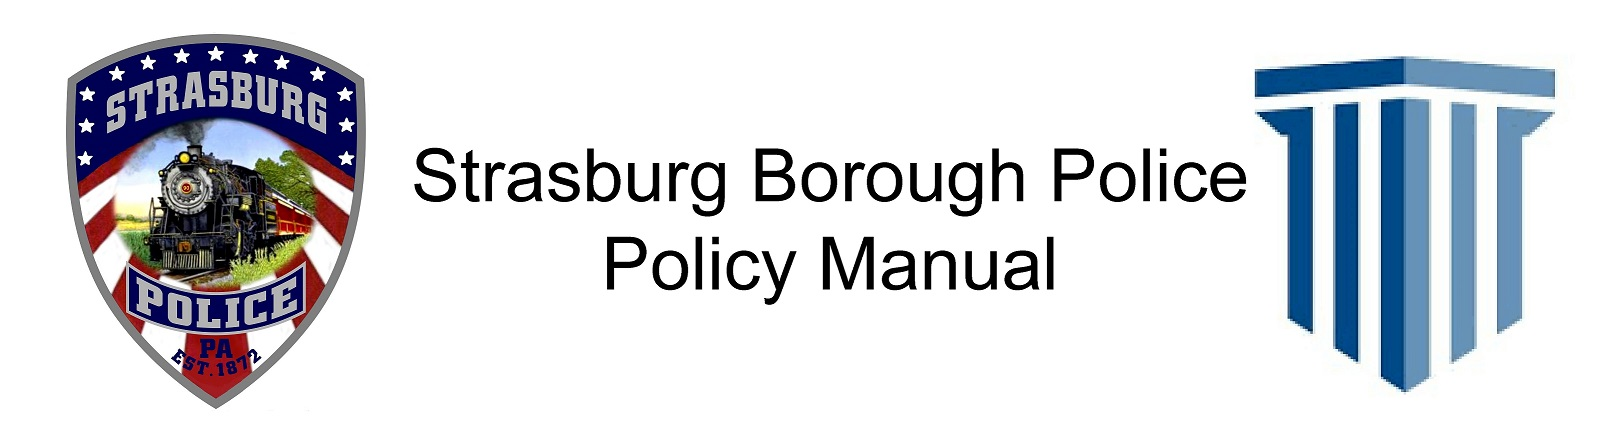 Policy Manual Logo